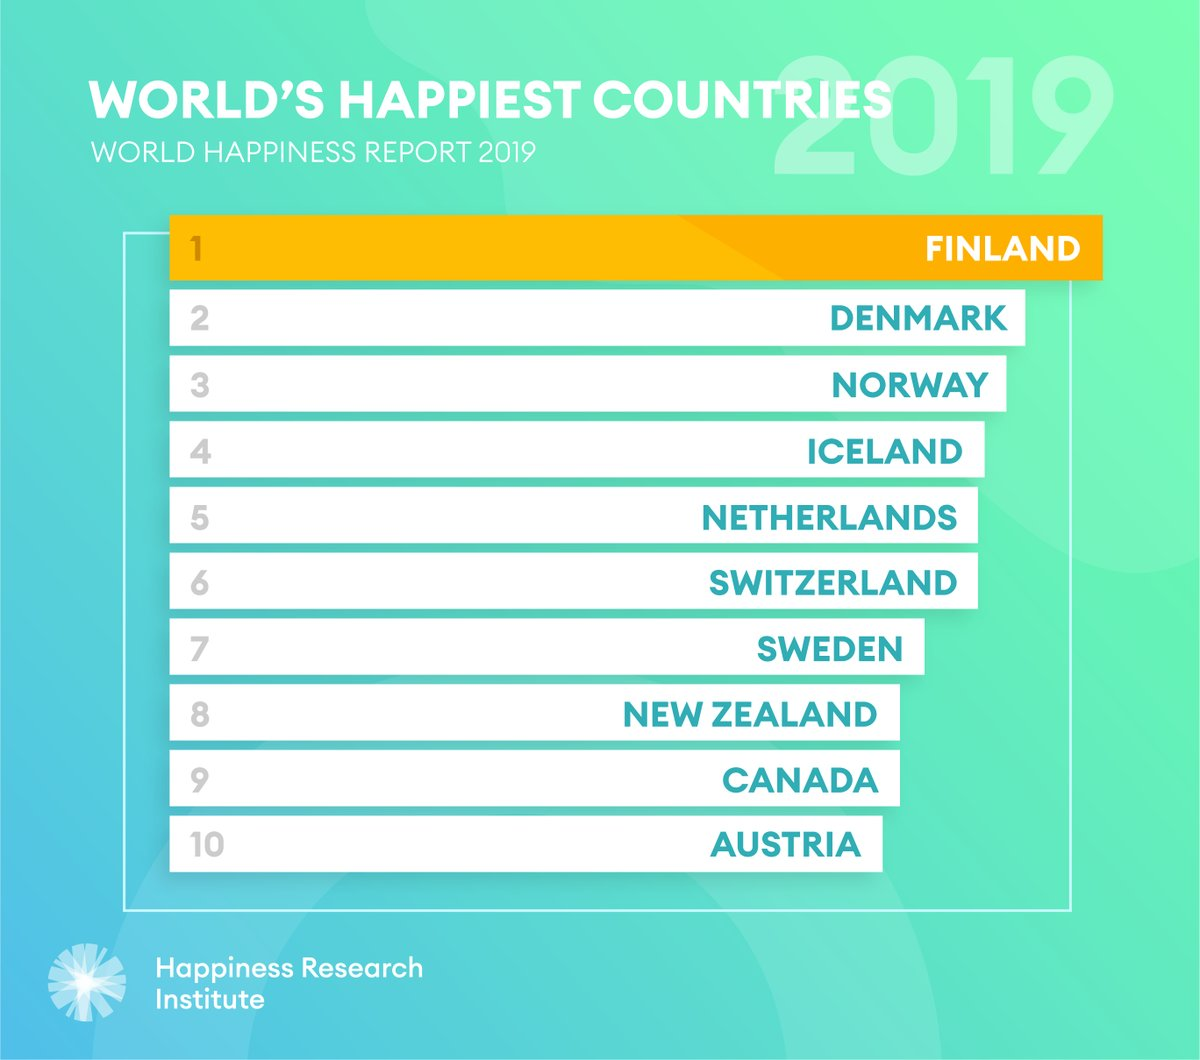 Four key things we learned from the2019 World Happiness Report